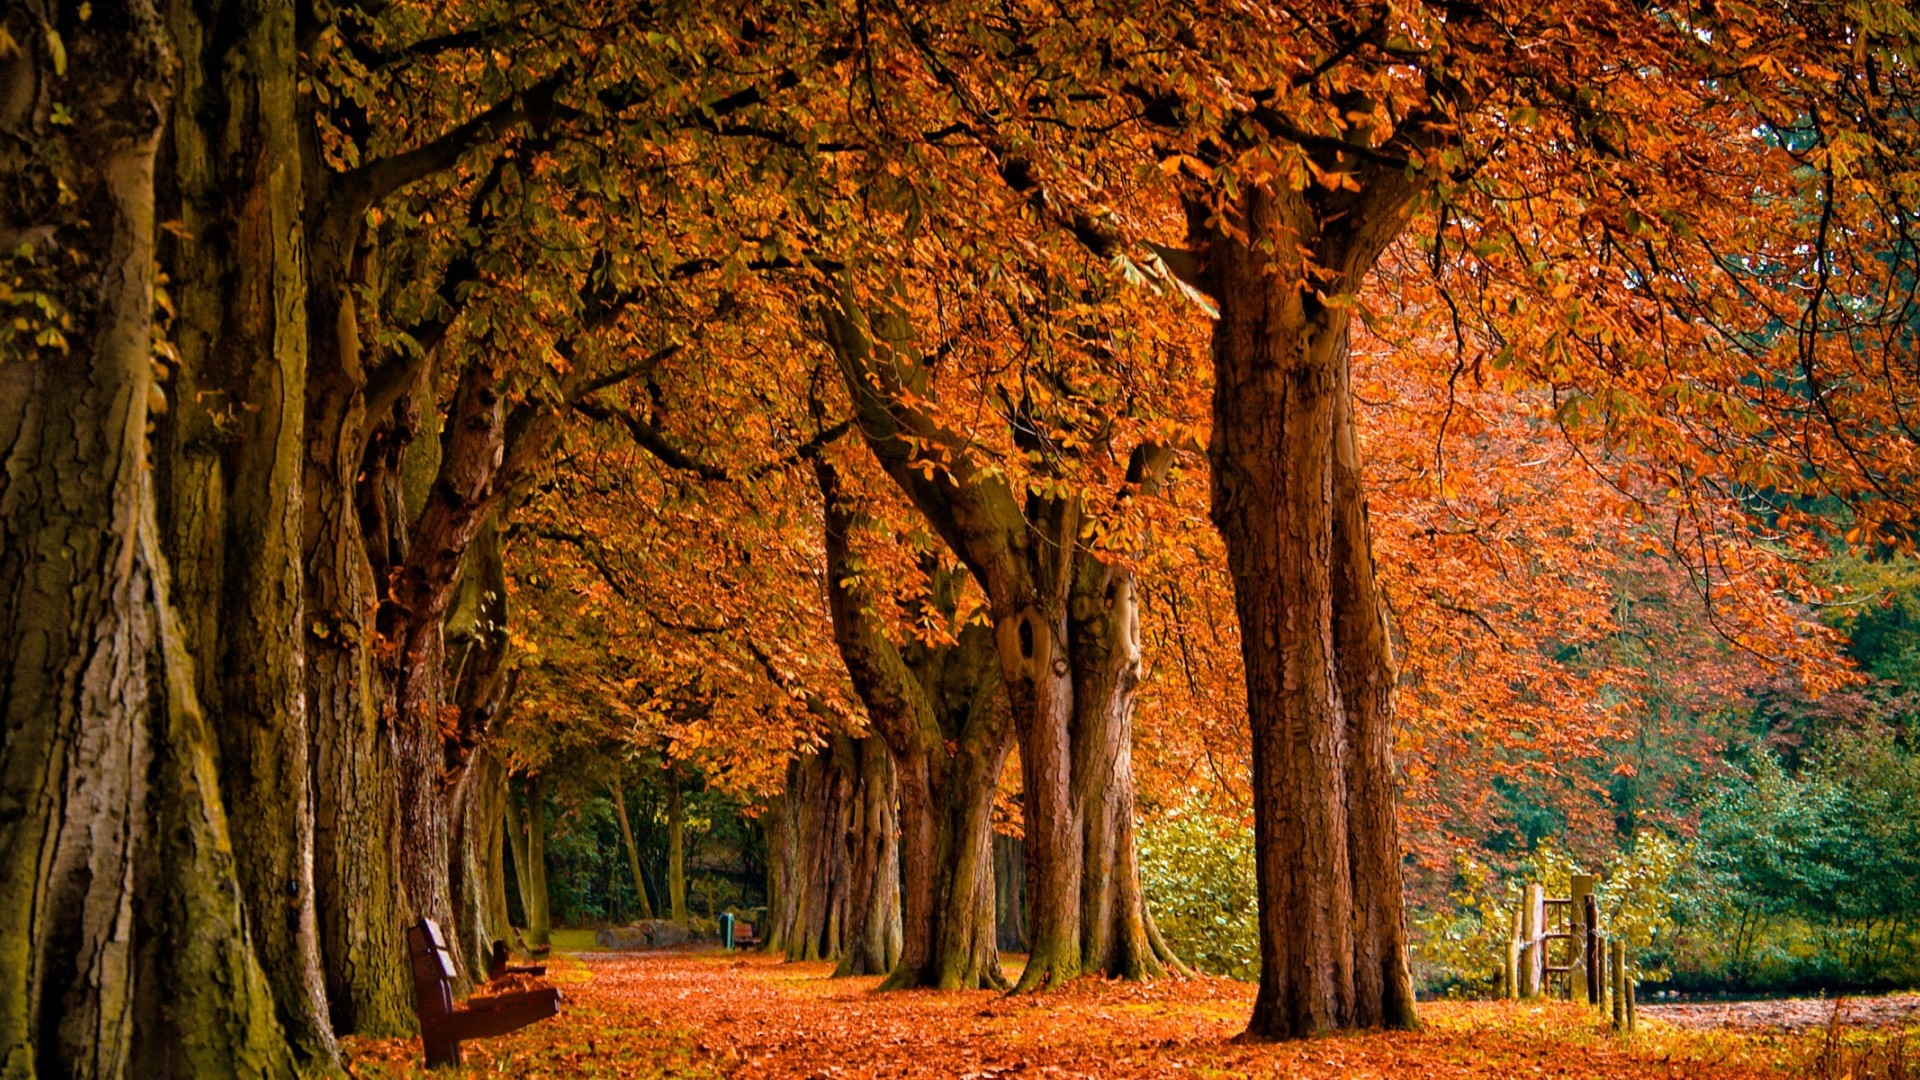 Fall Desktop Backgrounds Free Download Photo.